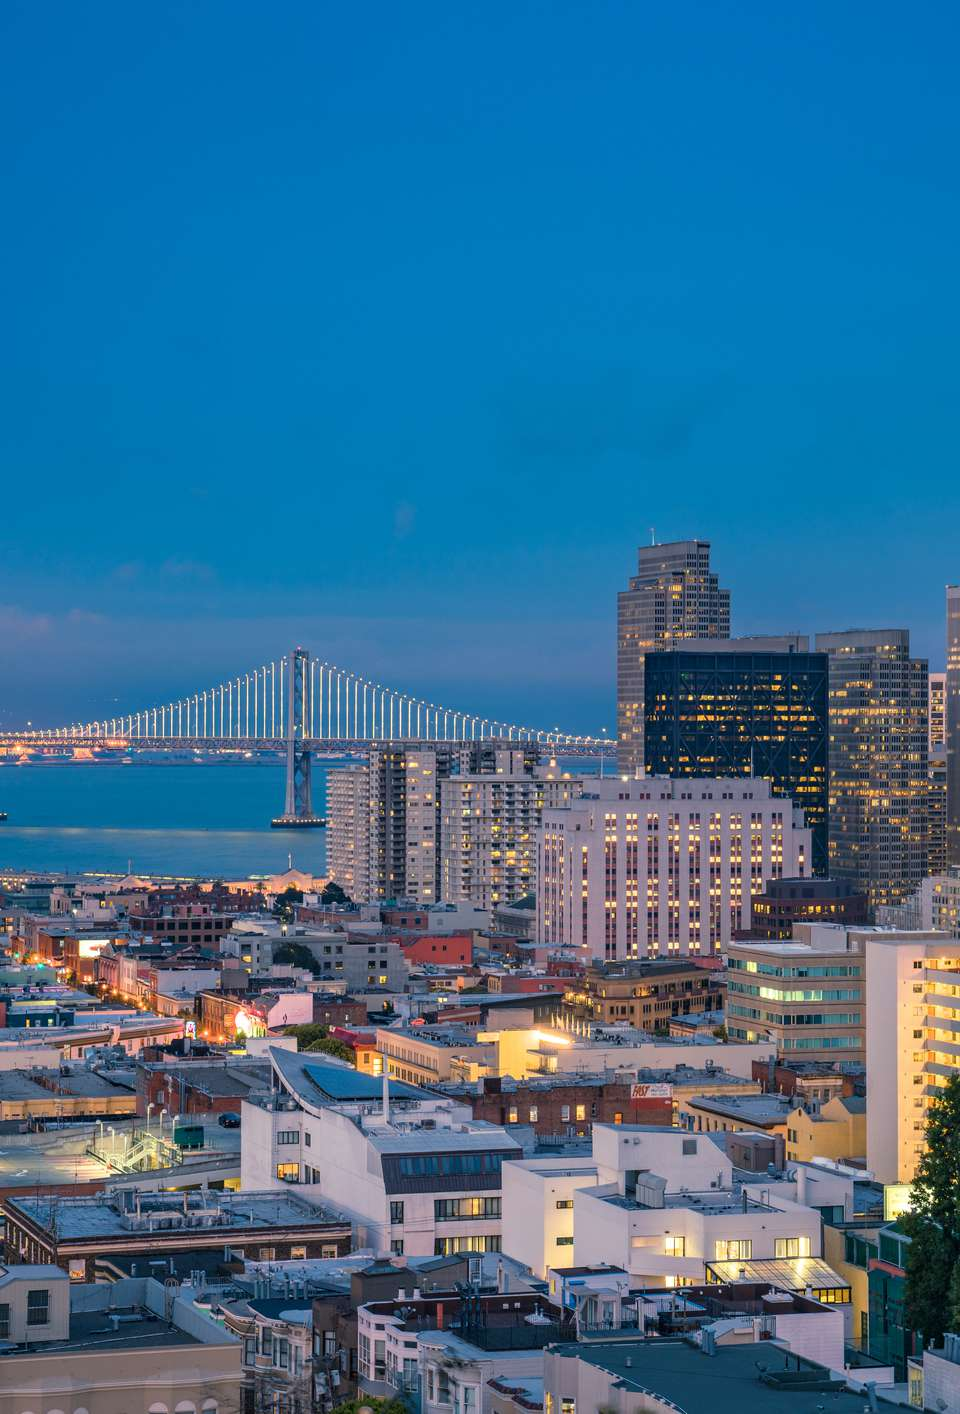 Night over San Francisco Downtown and Bay Bridge from Ina Coolbrith Park, USA (Dusk)